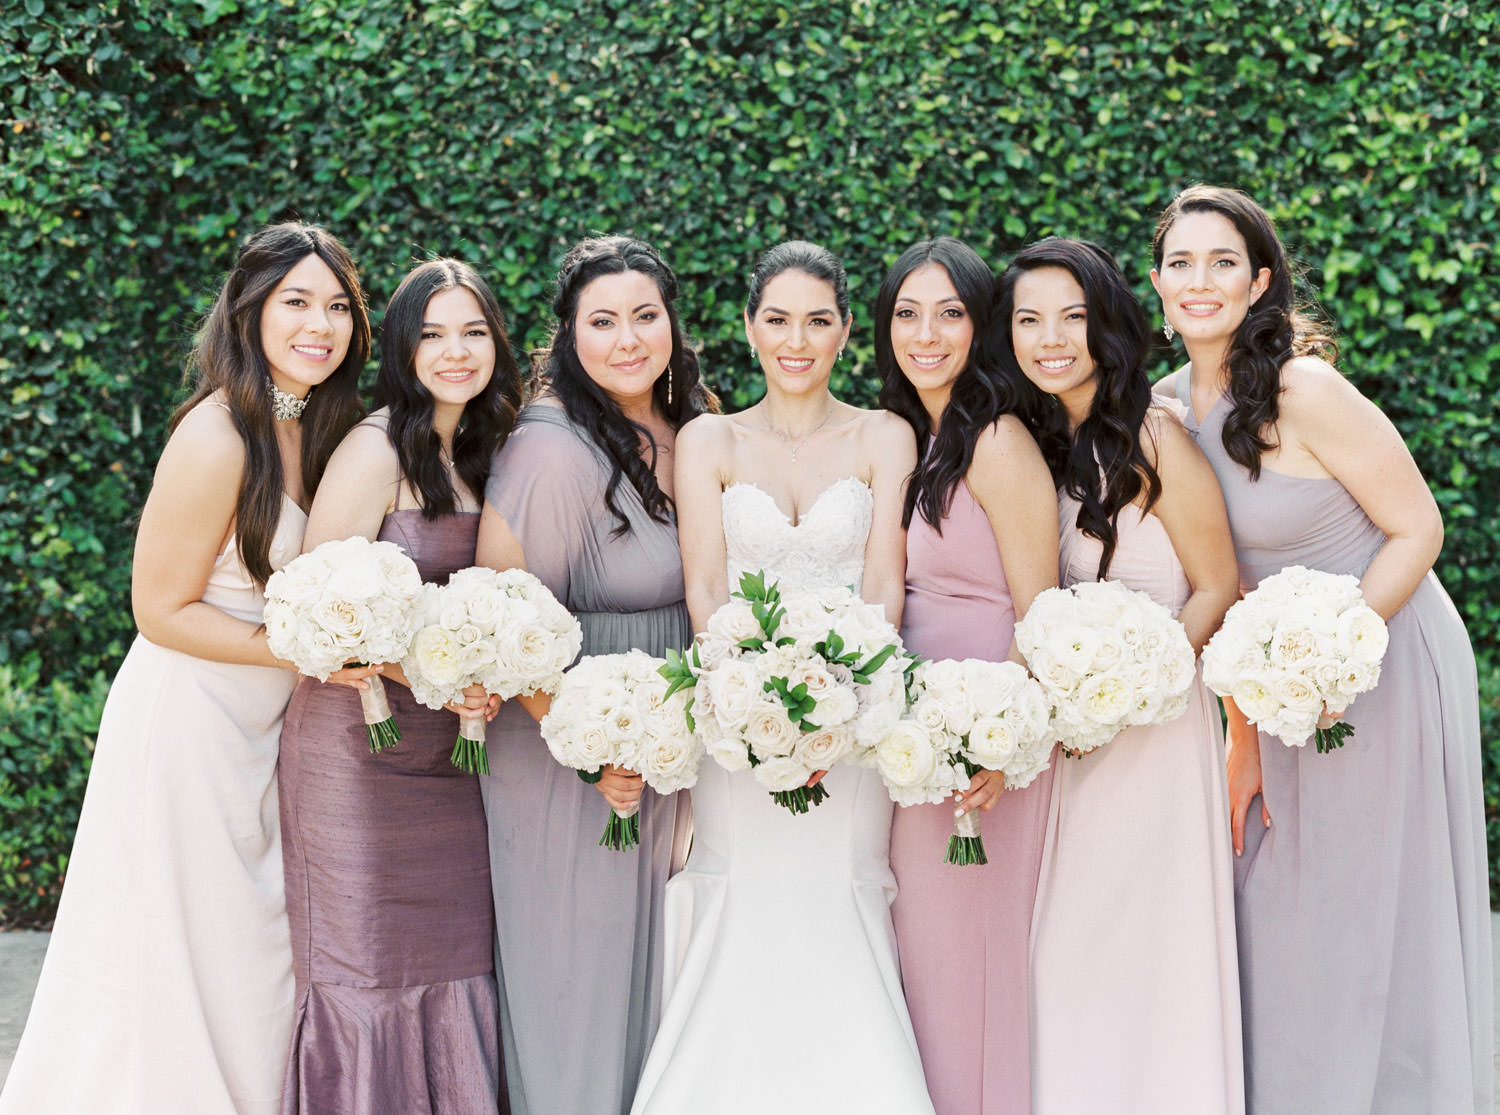 Bride with bridesmaids in blush mauve and lavender gowns in front of an ivy covered wall, Santalux Club wedding reception, Cavin Elizabeth Photography